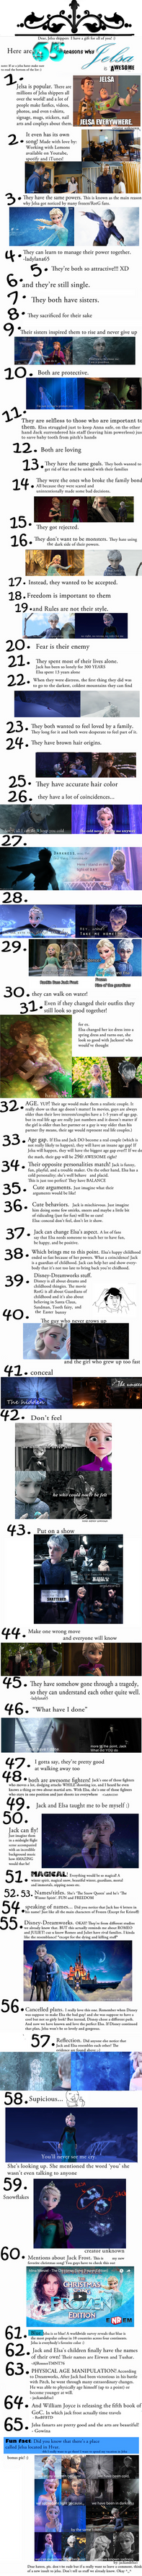 65 reasons why JELSA is AWESOME!!! by AngelUnicorn123